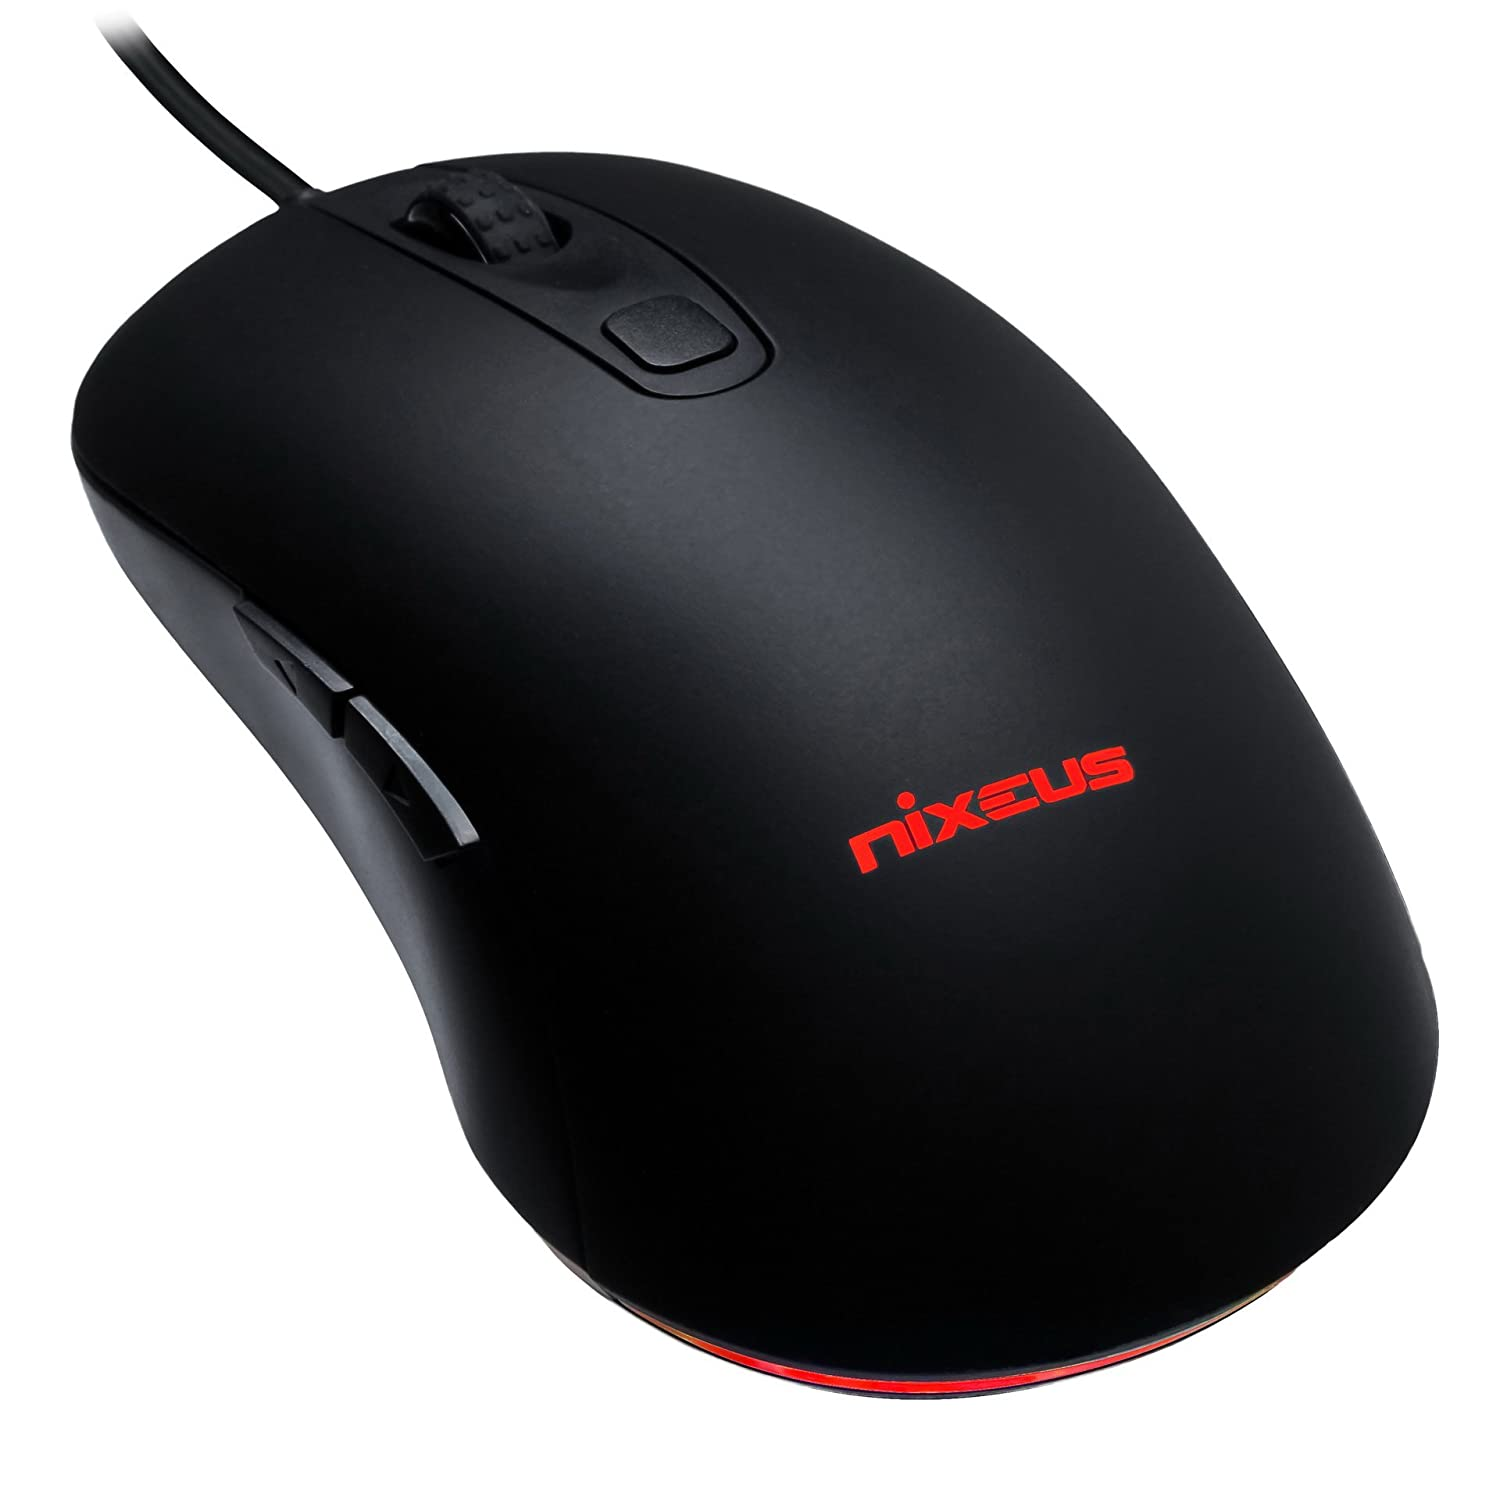 Nixeus Revel Gaming Mouse PMW 3360 for Windows Mac OS, Rubberized Black